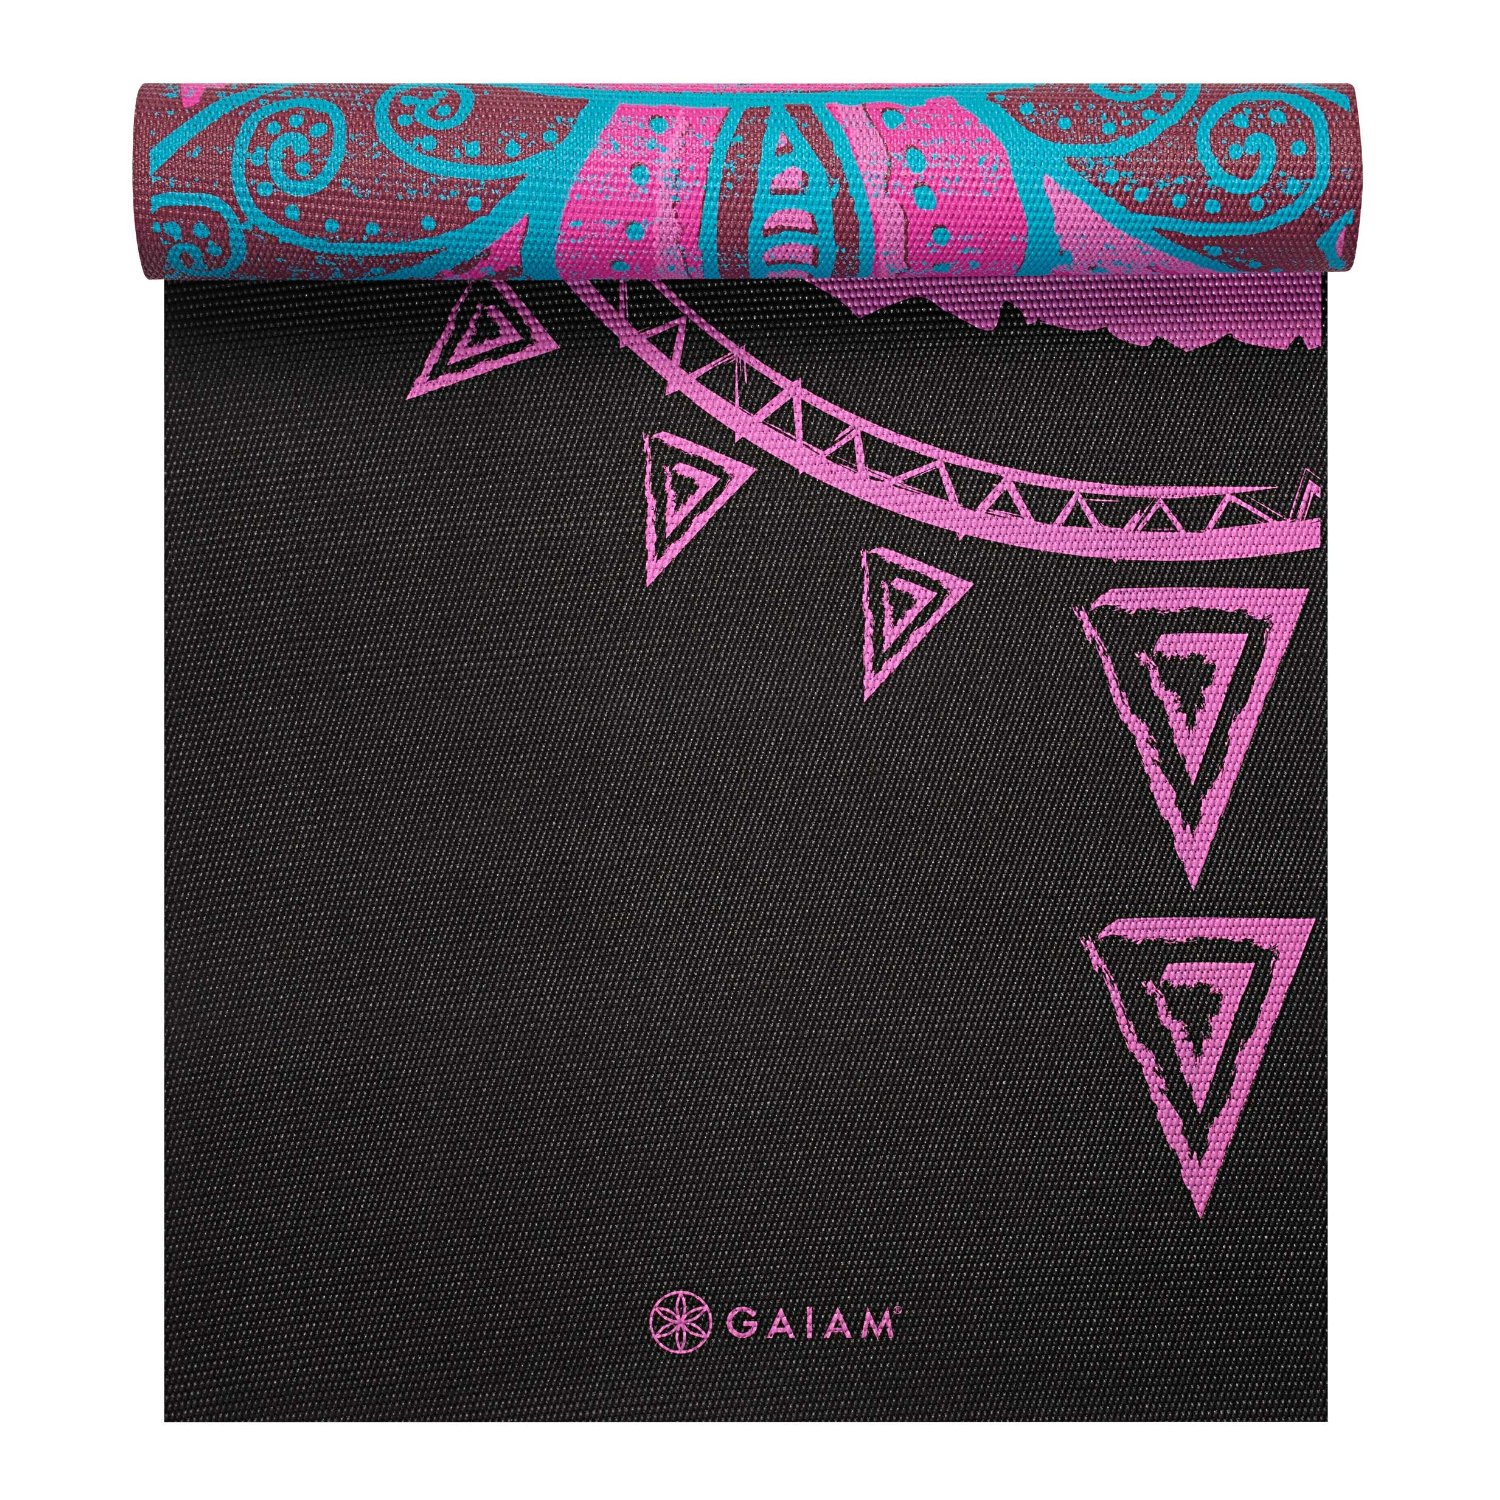 gaiam print premium reversable yoga mats 5mm